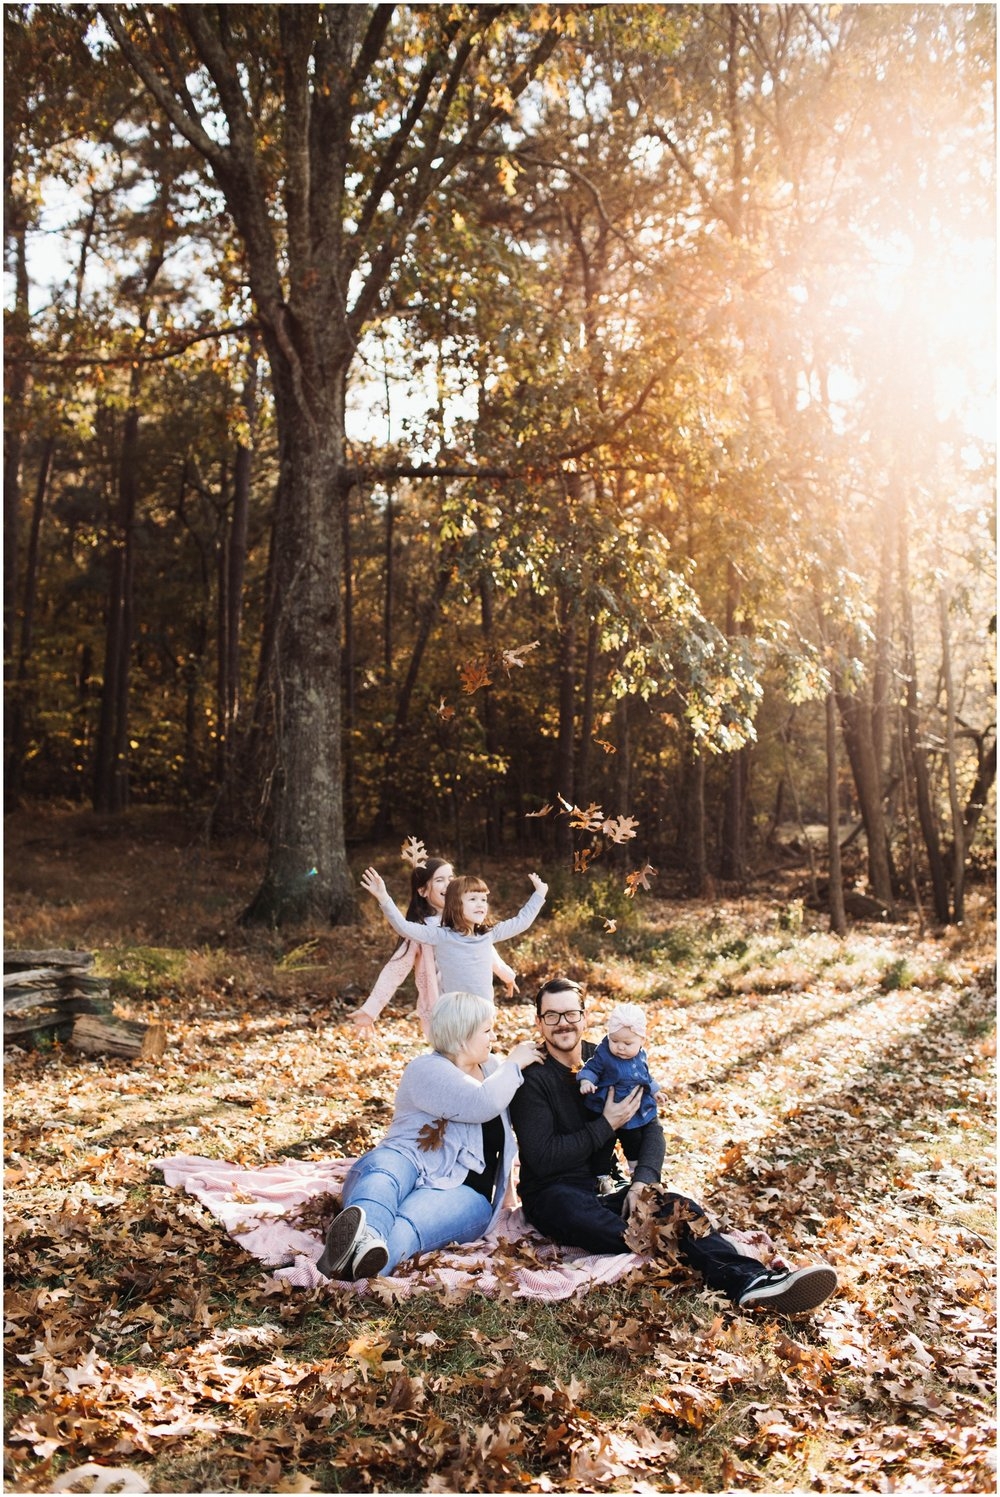 the_fosburghs_adventure_family_session_unposed_families_portraits_0010.jpg